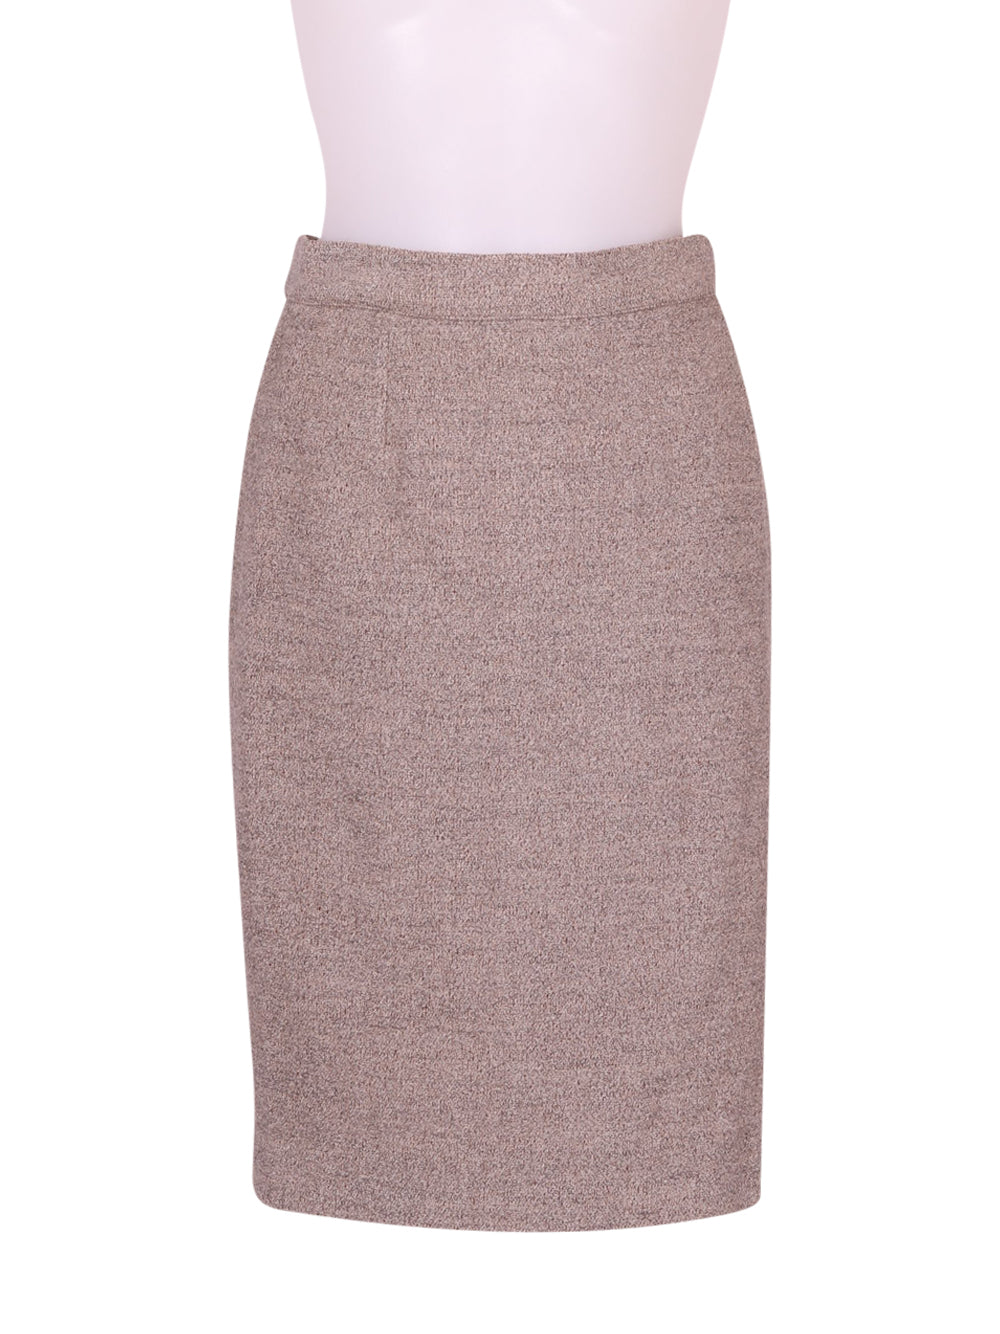 Front photo of Preloved fiorella cassaghi Beige Woman's skirt - size 10/M